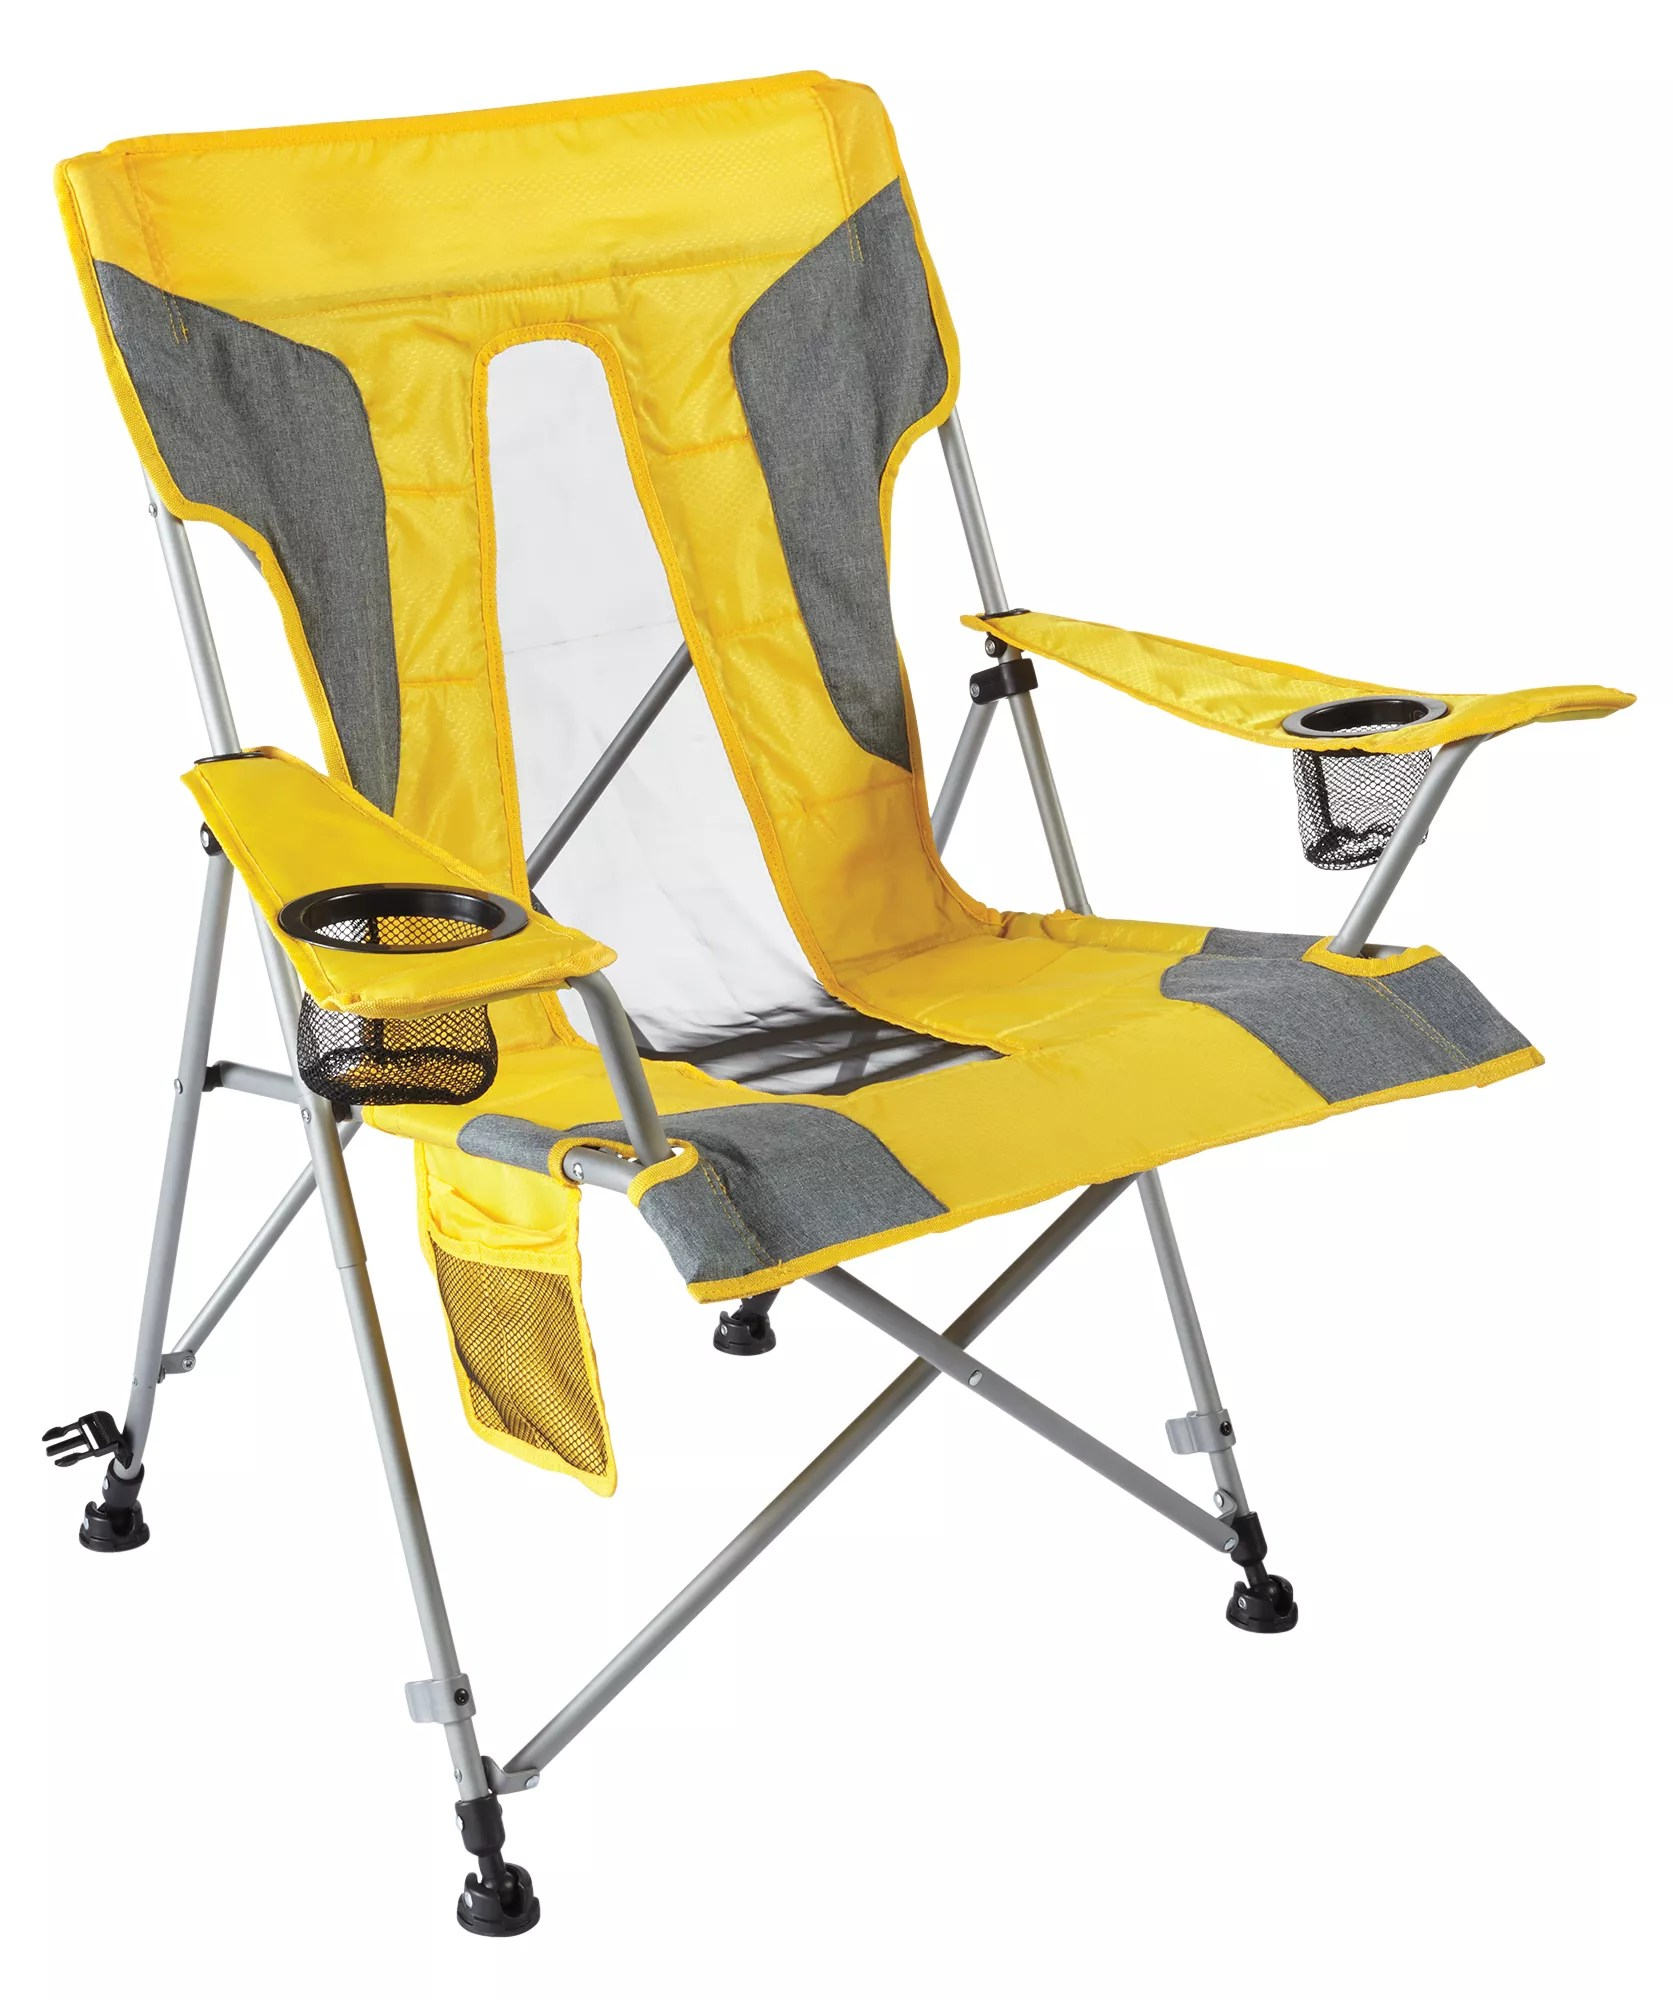 rocky oversized folding arm chair office chairs leather camping best price guarantee at dick s product image quest all terrain